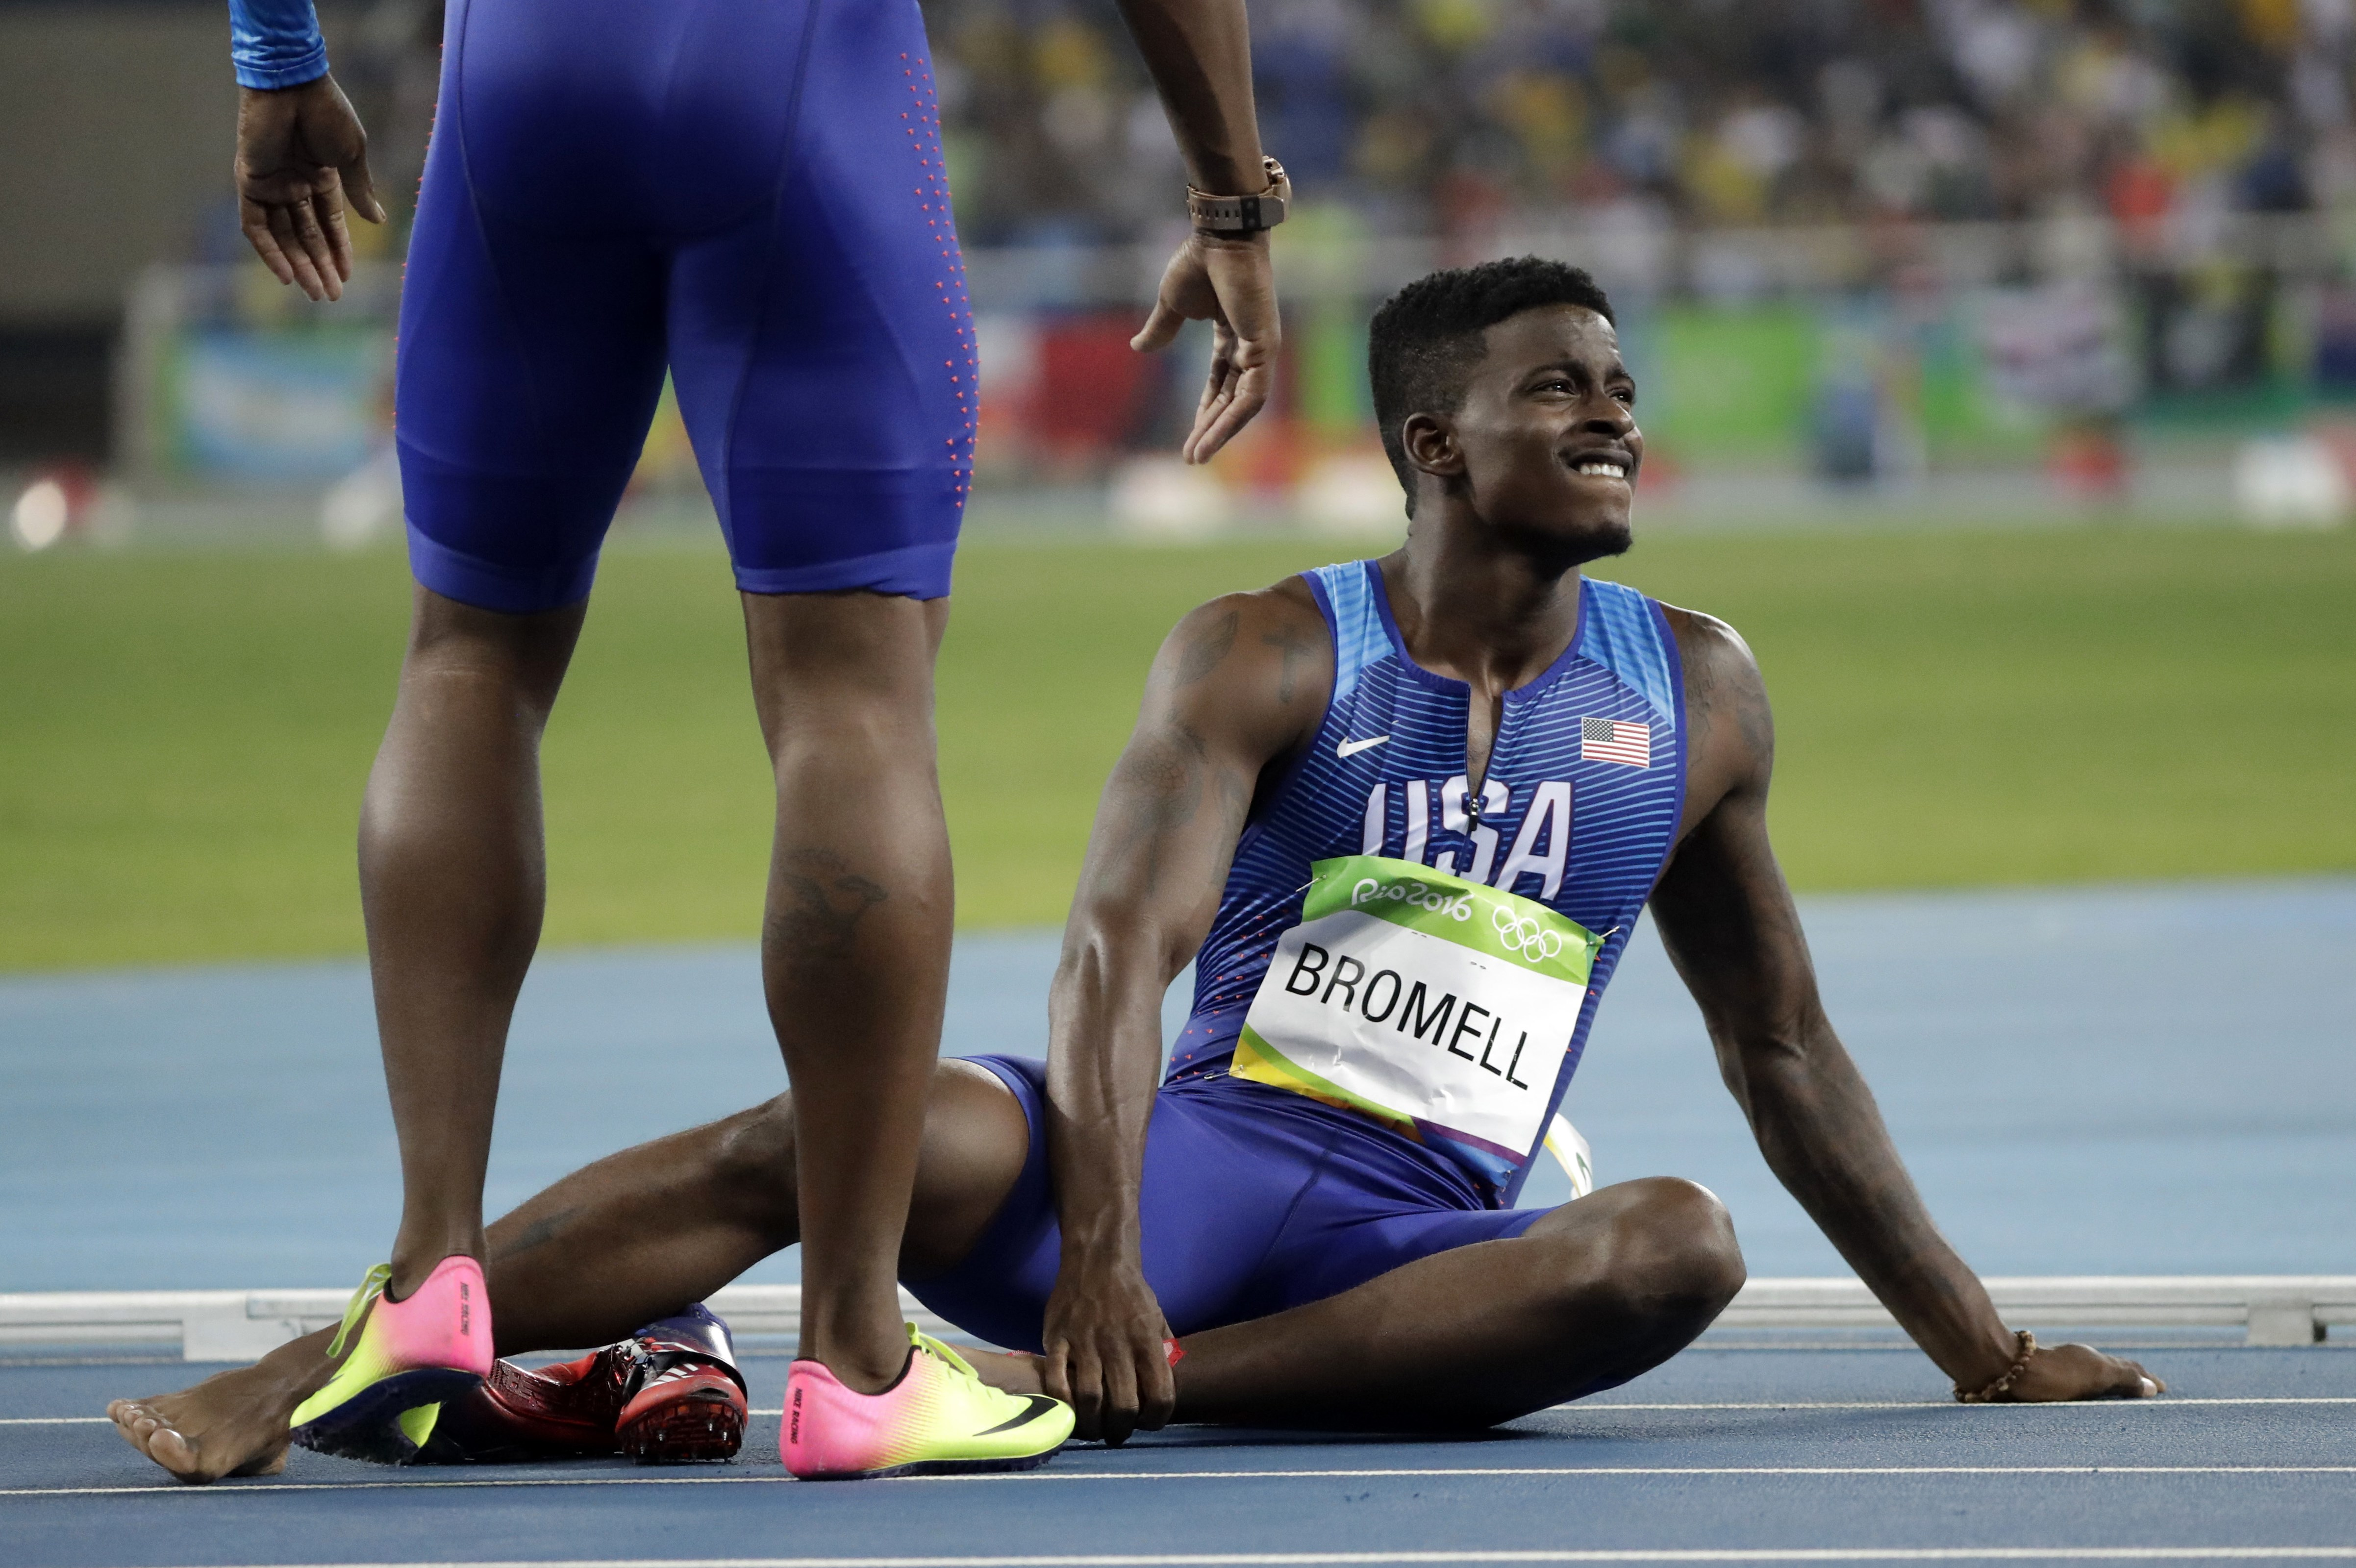 United States' Trayvon Bromell sits on the track after falling in the men's 4x100-meter relay final during the athletics competitions of the 2016 Summer Olympics at the Olympic stadium in Rio de Janeiro, Brazil, Friday, Aug. 19, 2016. (AP Photo/David J. P